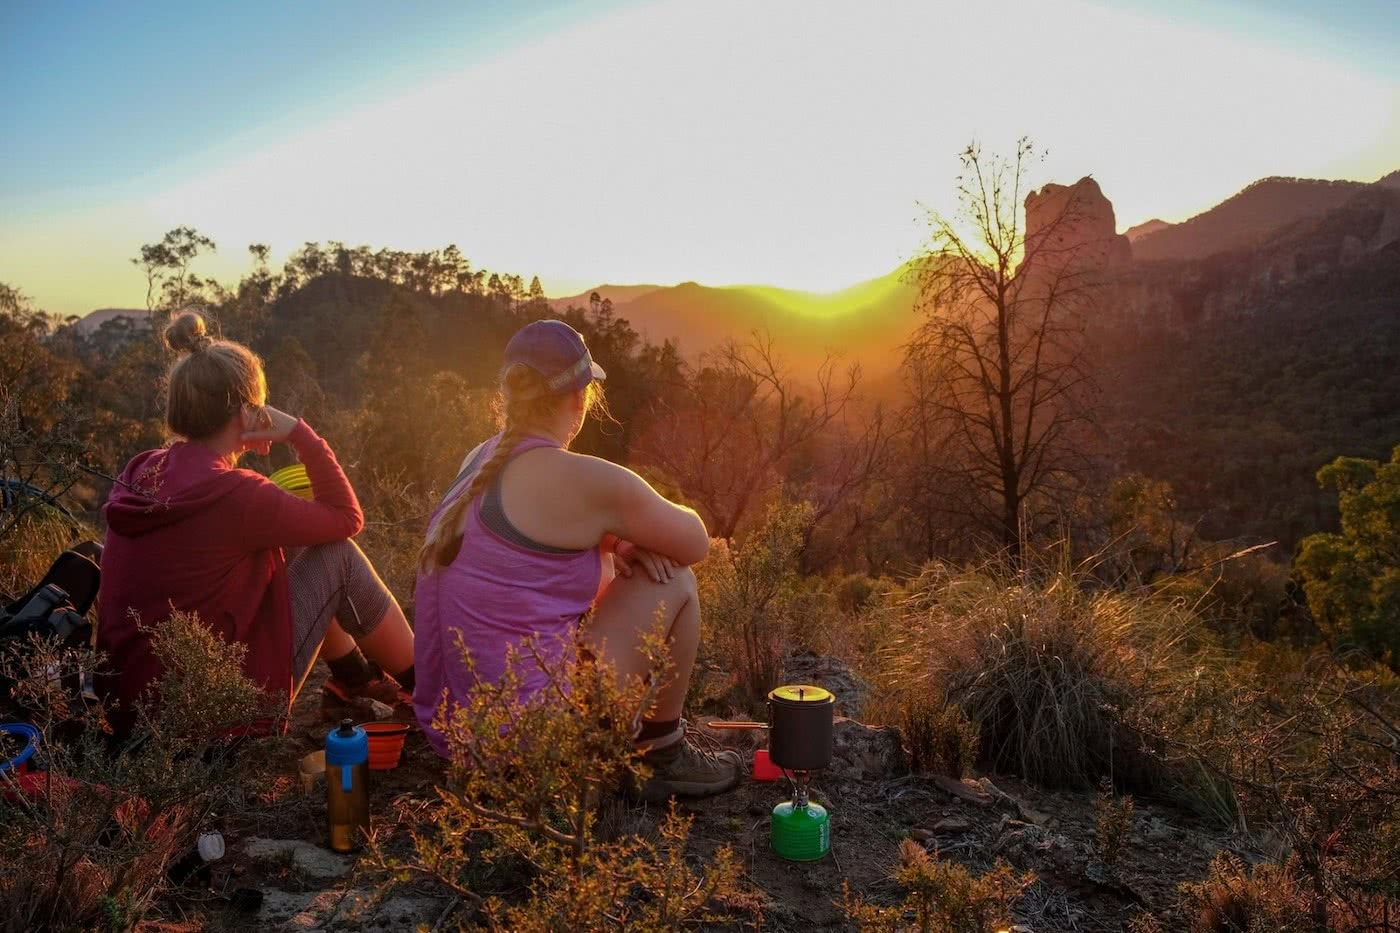 Brooke Nolan // Explorer Of The Month - September '18, Warrumbungles, sunset, resting, gazing, sitting, camp stove, dinner time, end of day